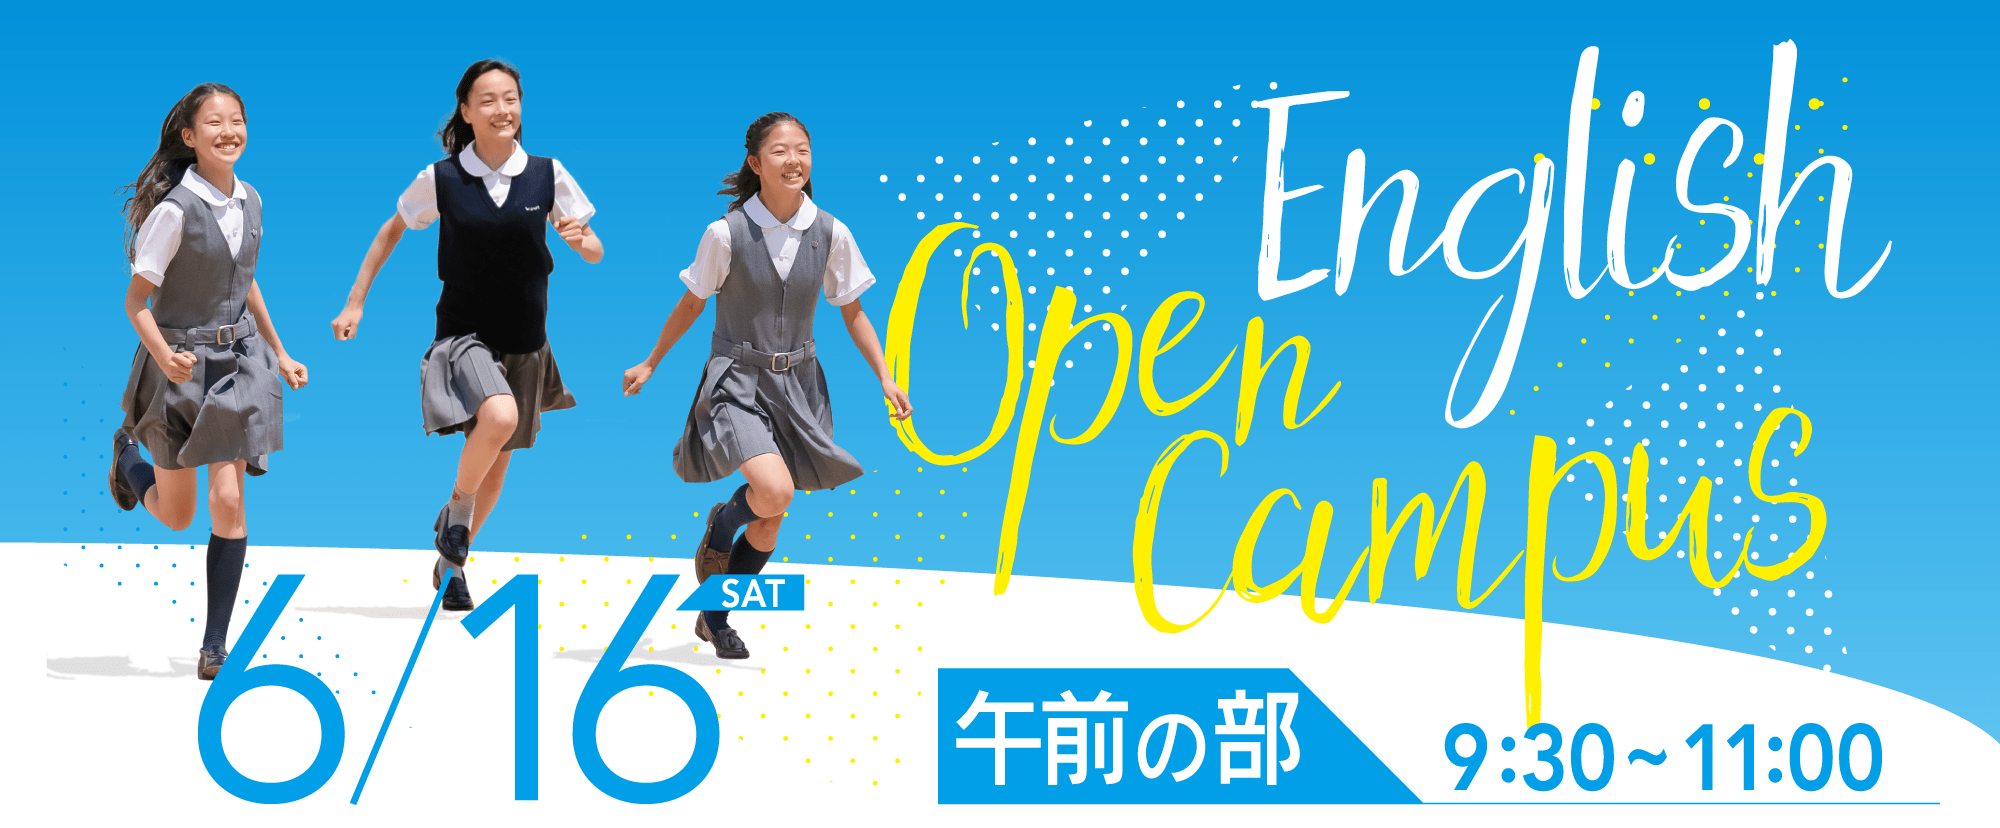 English Open Campus 午前の部